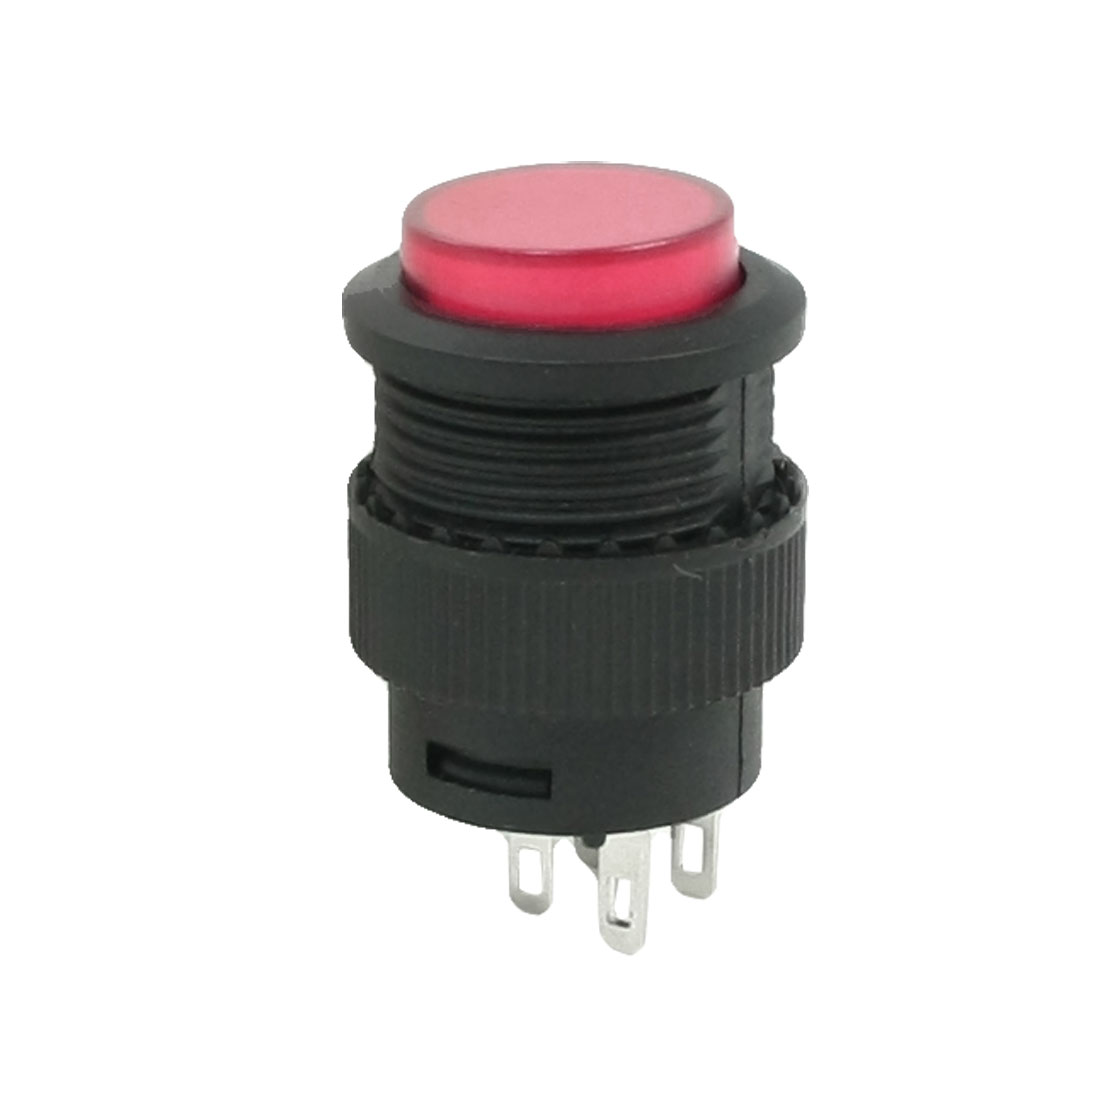 Red Round Cap SPDT 4 Pins Momentary Push Button Switch AC 250V 1.5A 125V 3A